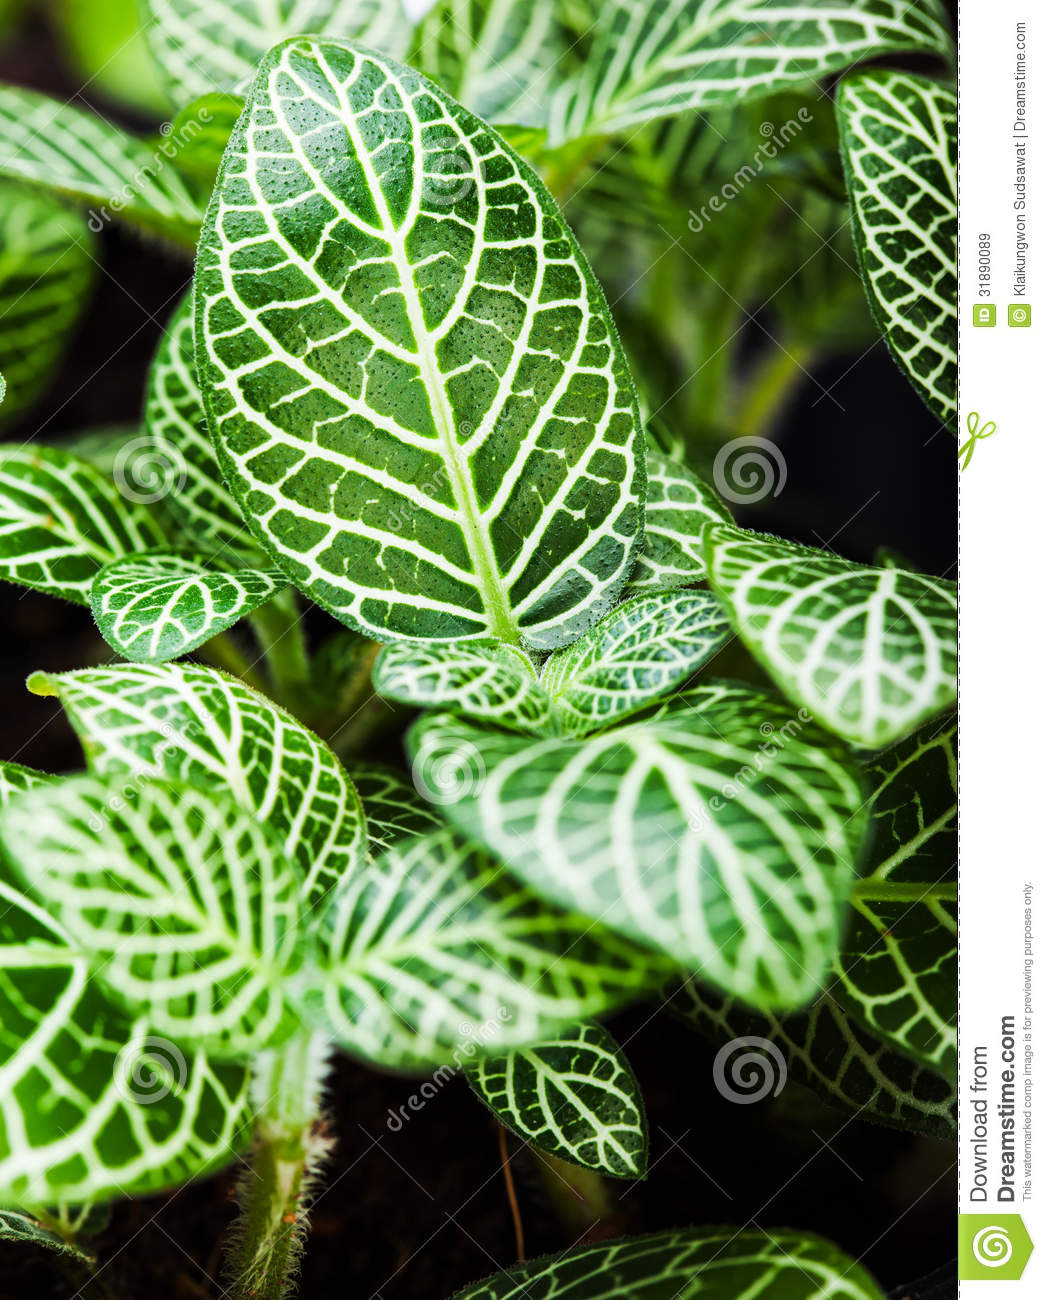 Striped Leaf Ornamental Plants Close Up Royalty Free Stock